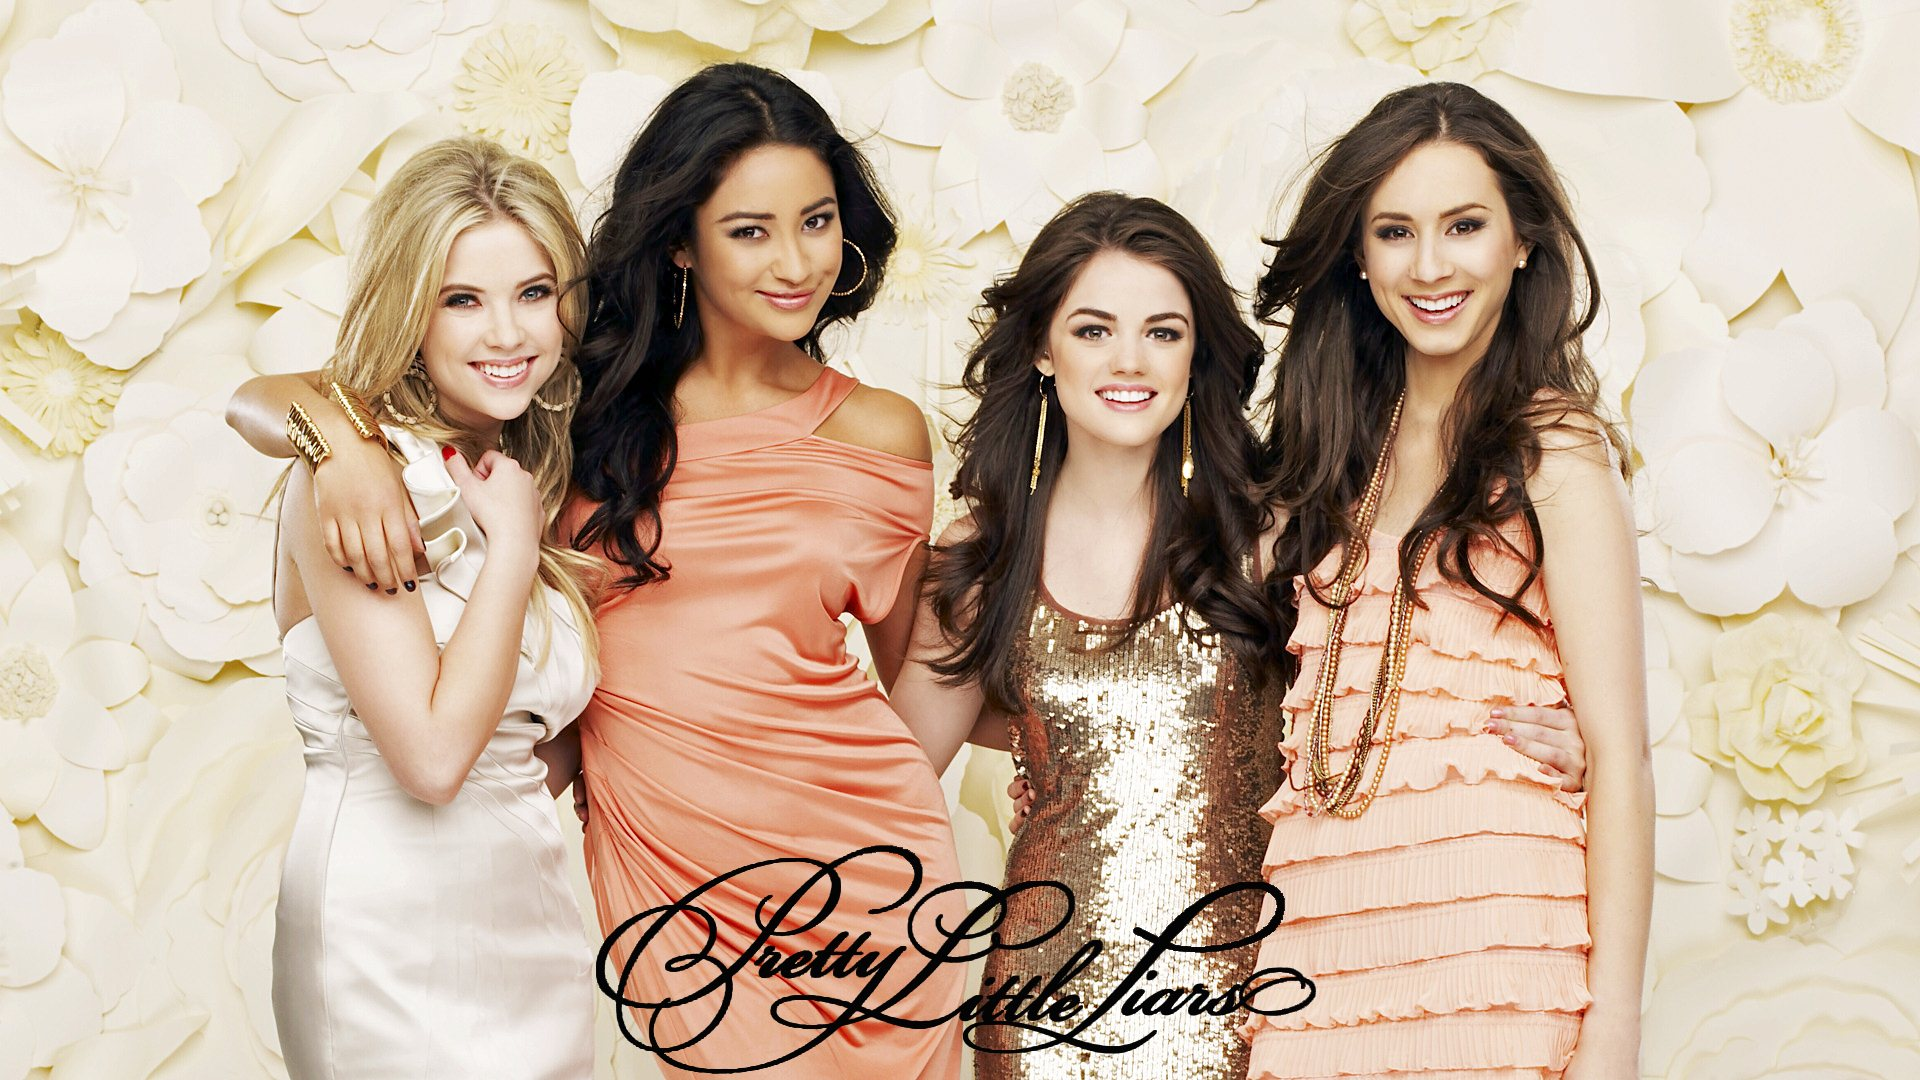 HD Pretty Little Liars PC Background Background Machine 1920x1080